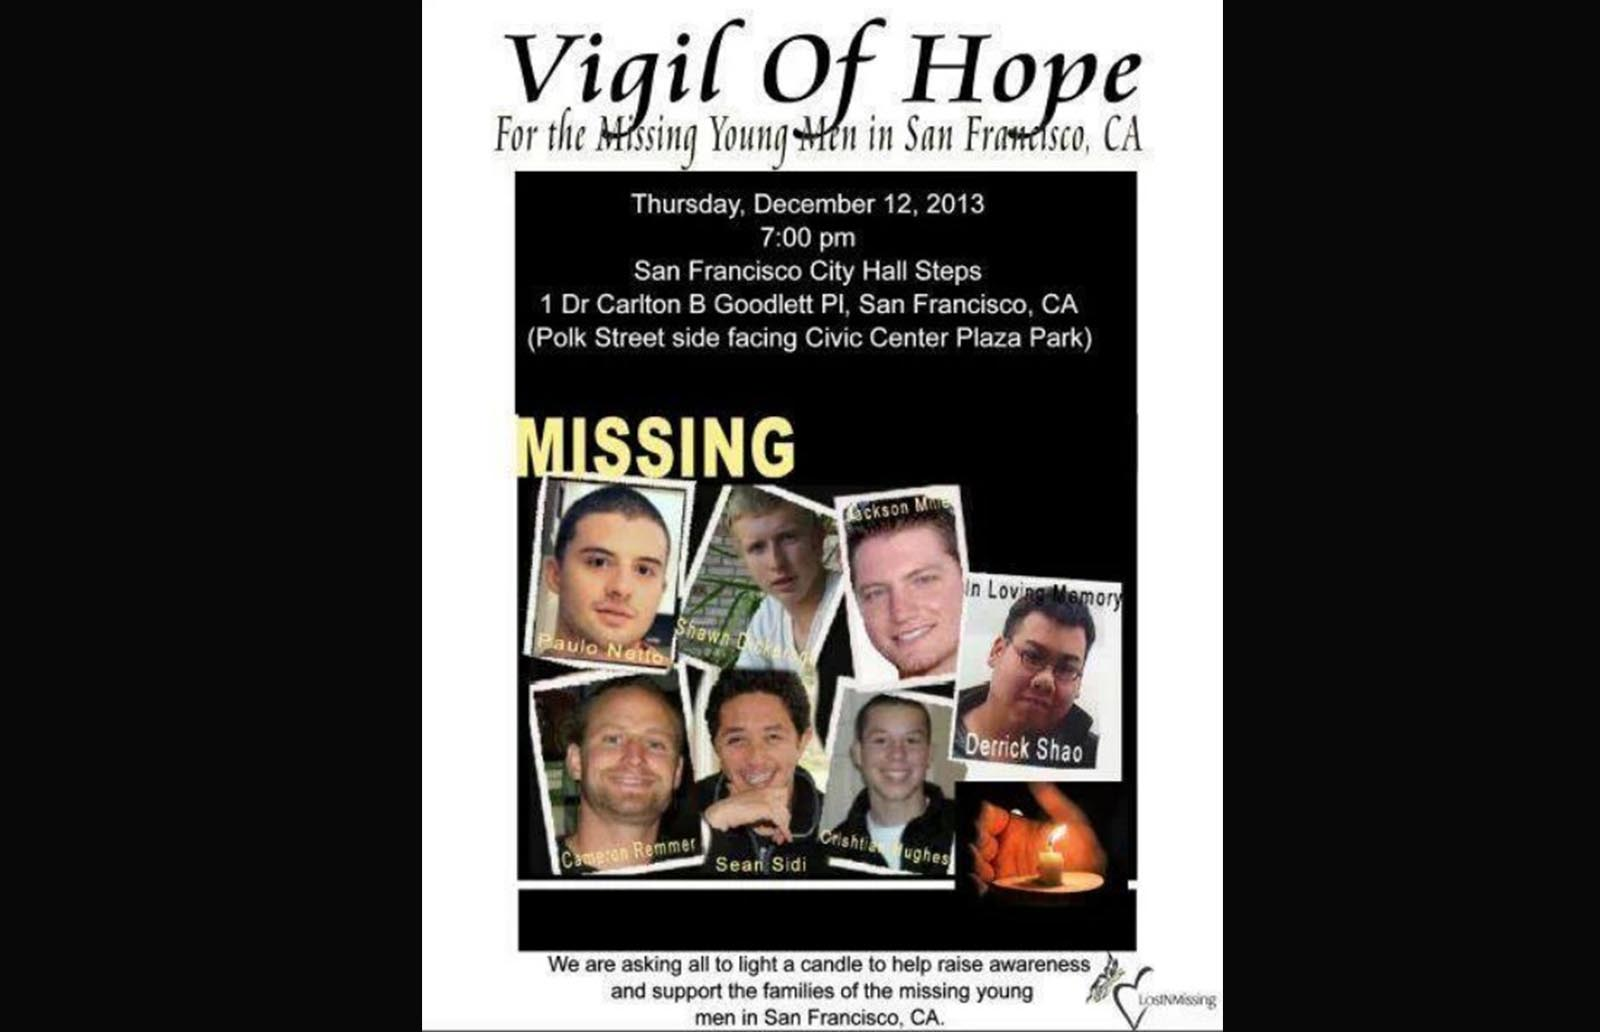 Commemorate Those Still Missing at Candlelight Vigil This Thursday